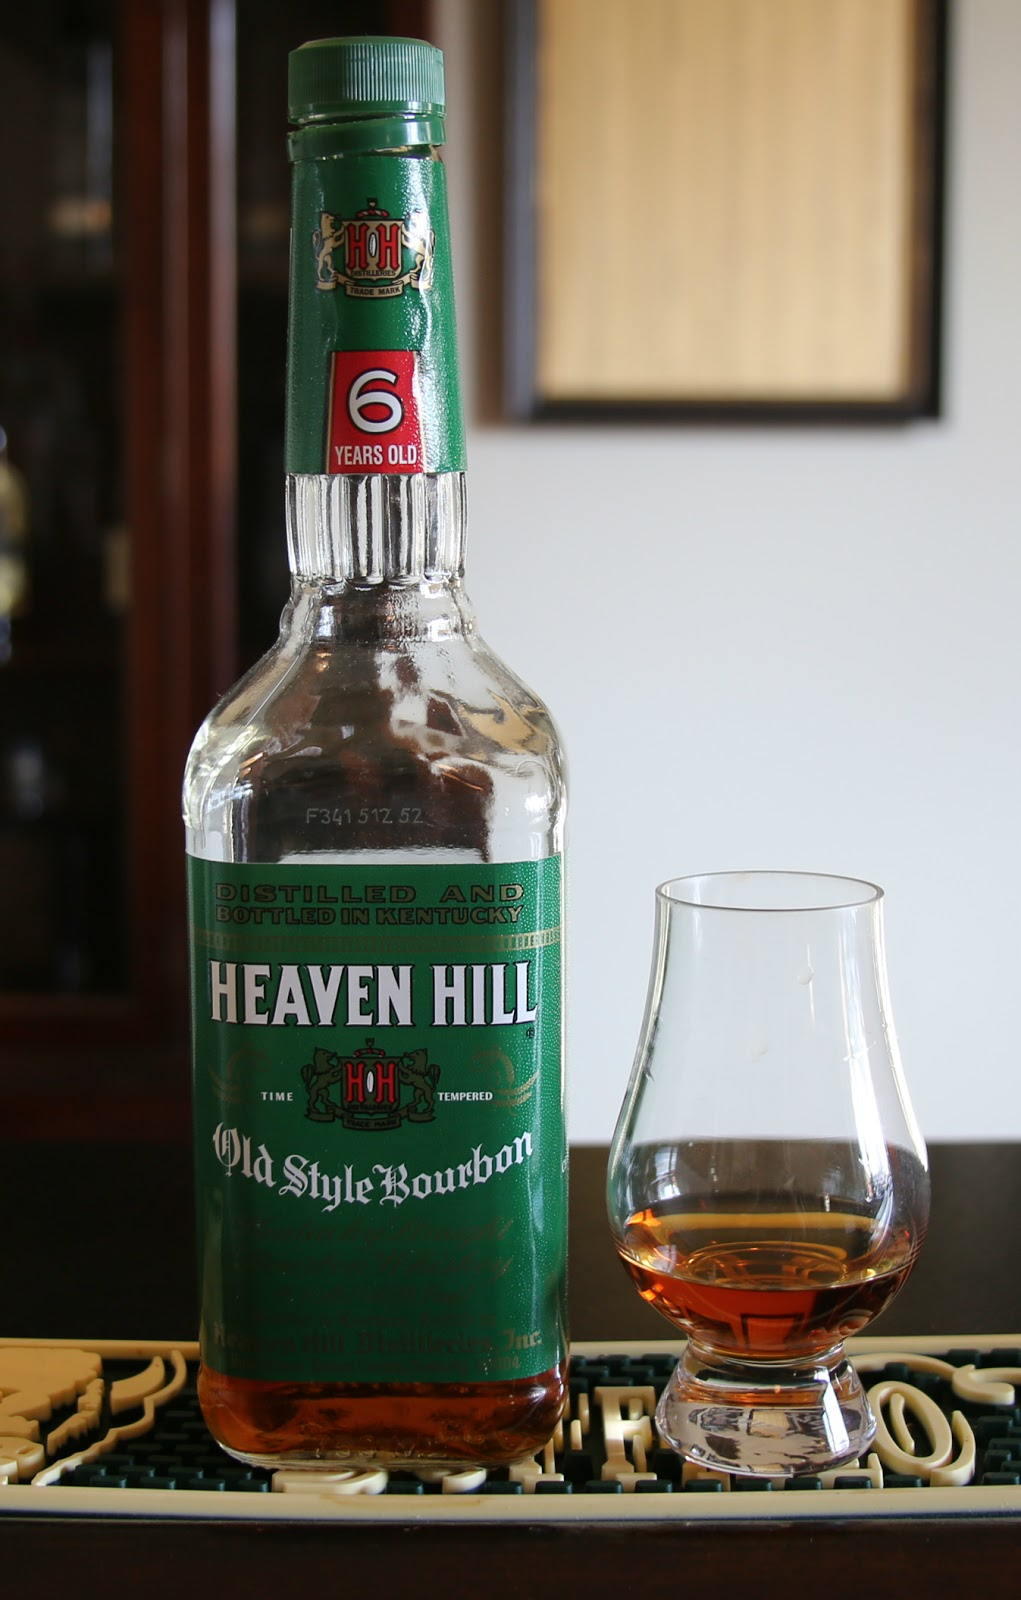 It's just an image of Genius Heaven Hill Green Label Review